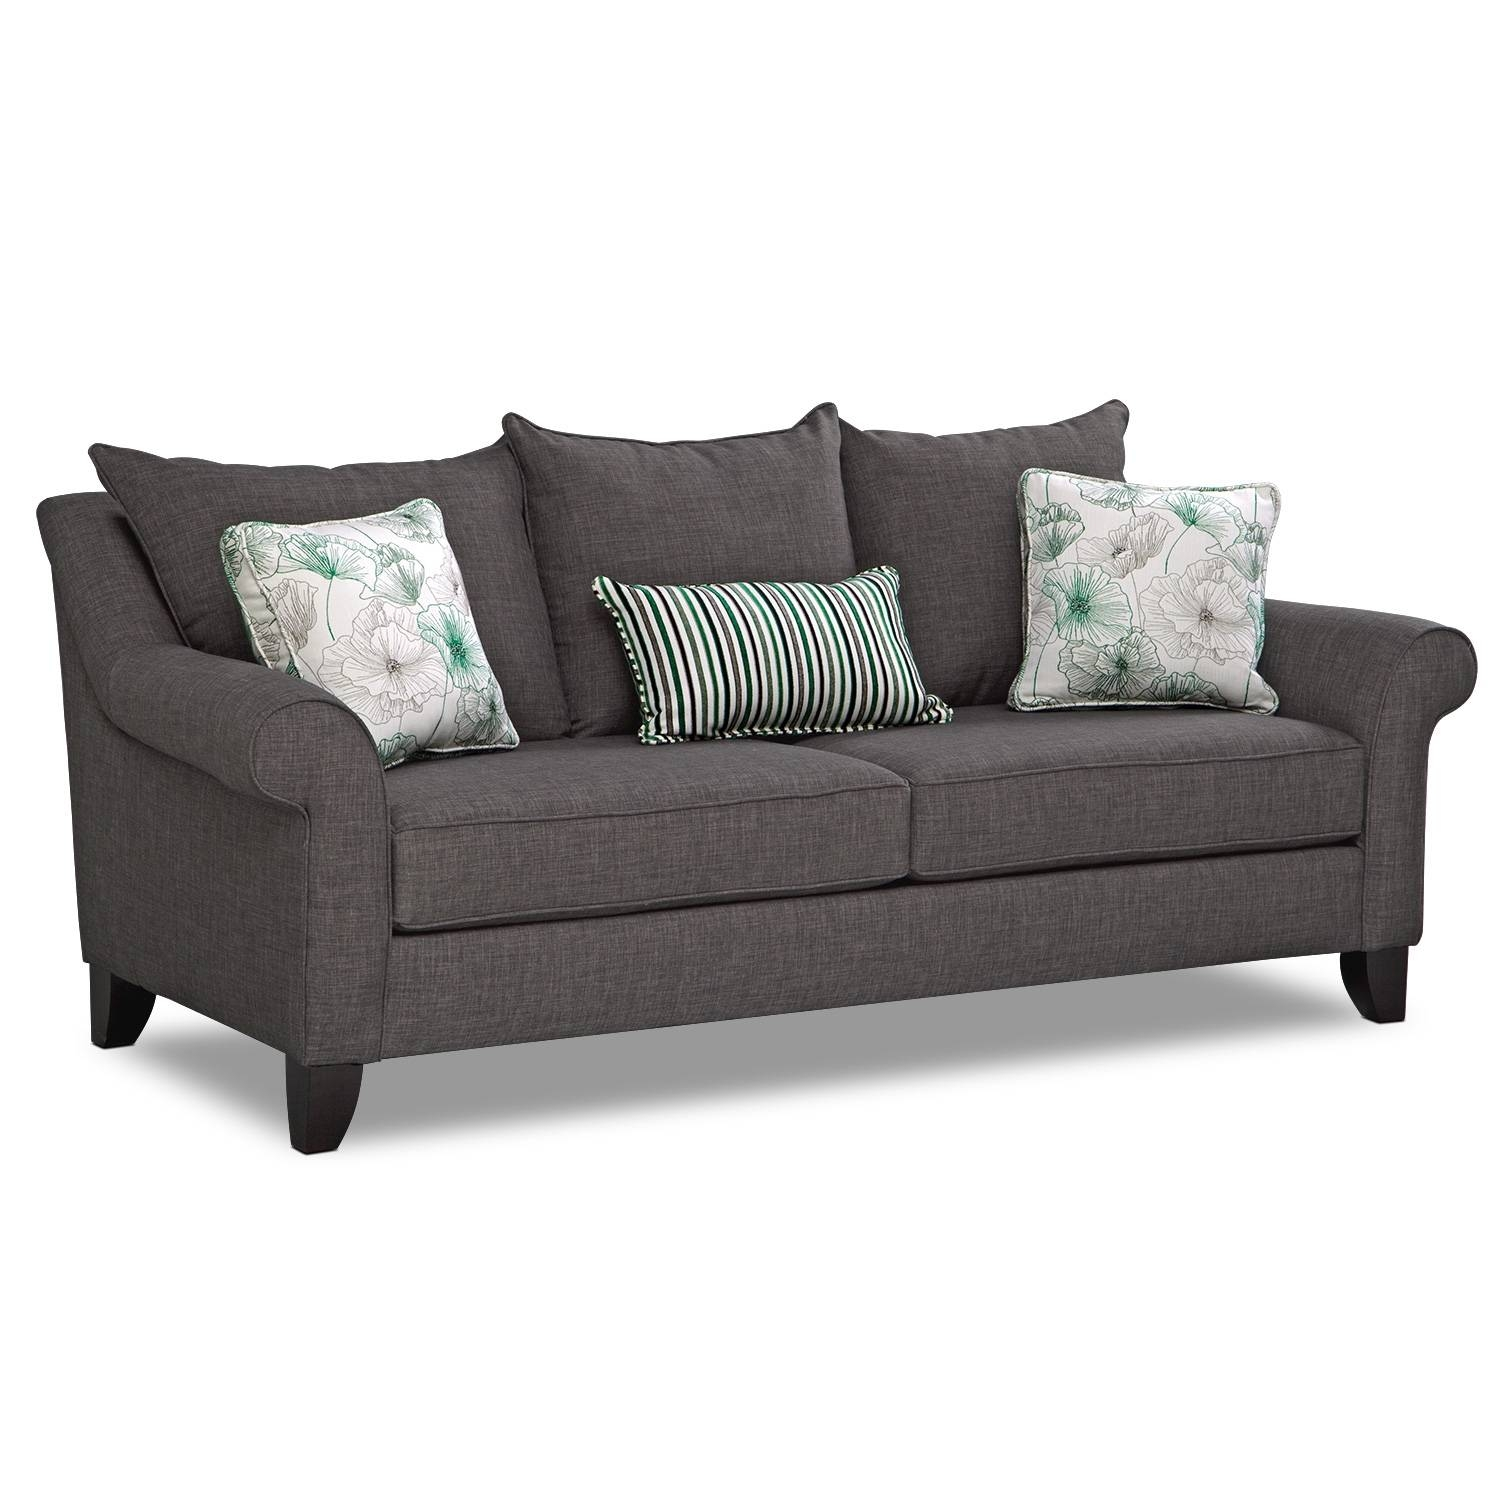 Living Rooms: Cheap Sectional | Value City Furniture Living Room within Value City Sofas (Image 12 of 25)